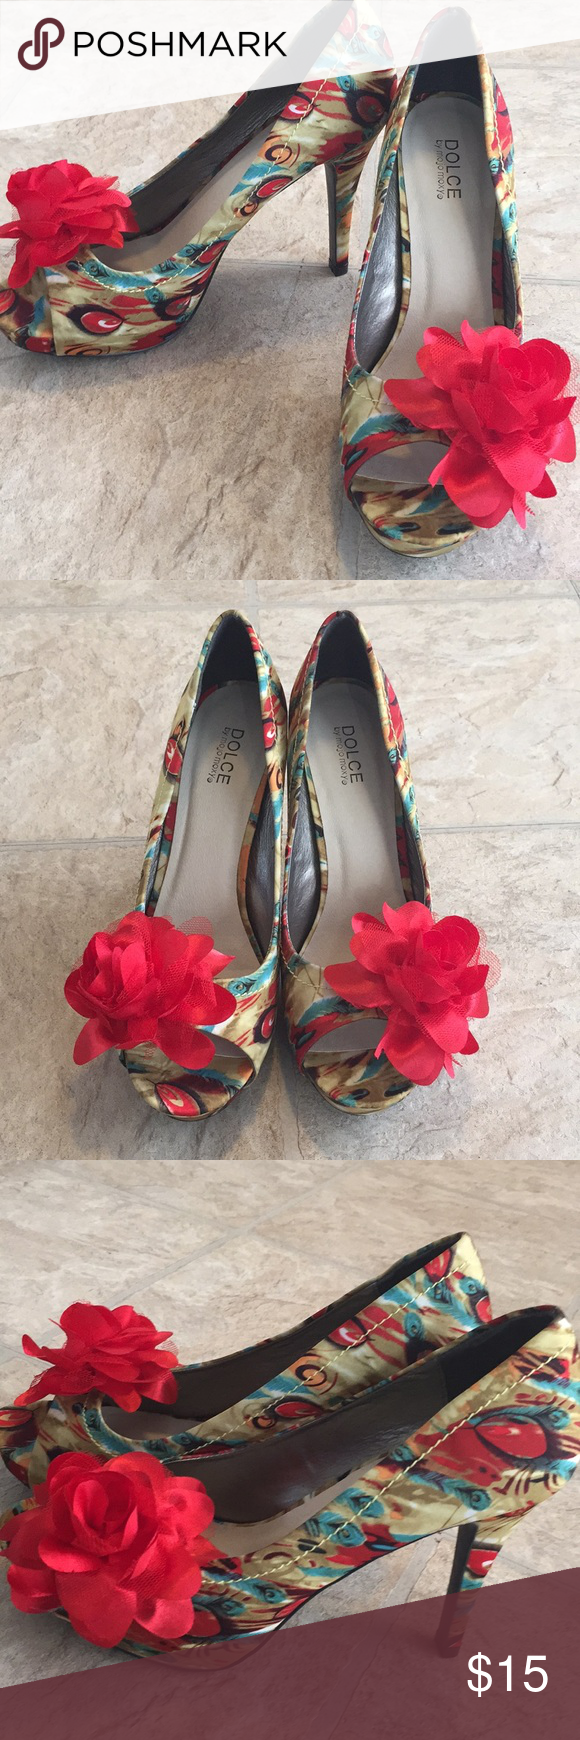 Beautiful dolce by mojo Moxy ladies stilettos In excellent used condition no scuffs or stains. Brightly colored peacock design with a big red flower dolce by mojo moxy Shoes Heels